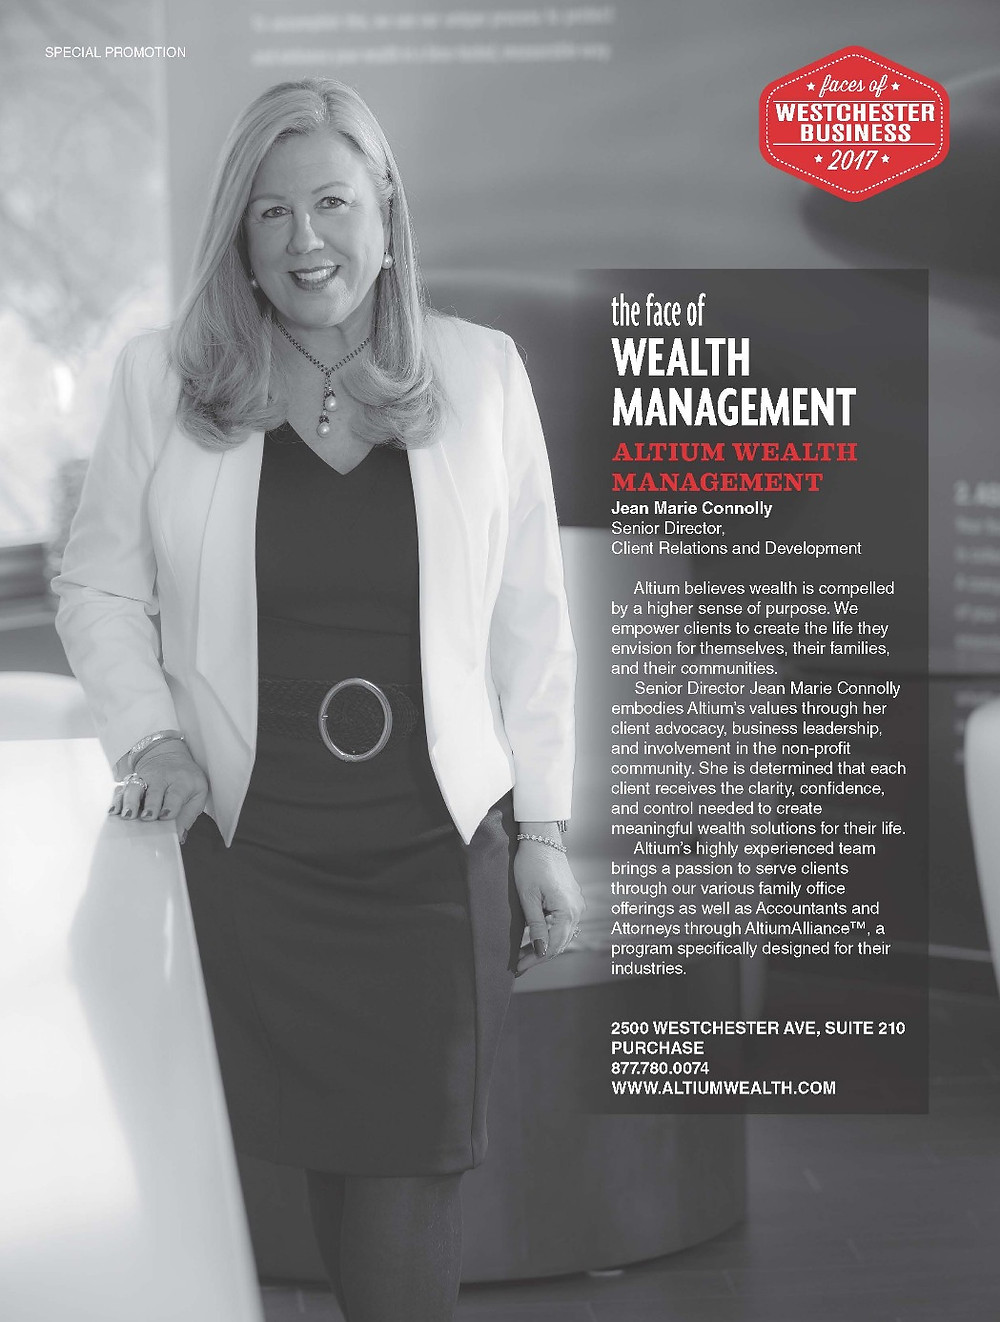 Jean Marie Connolly as the face of Wealth Management - 914INC